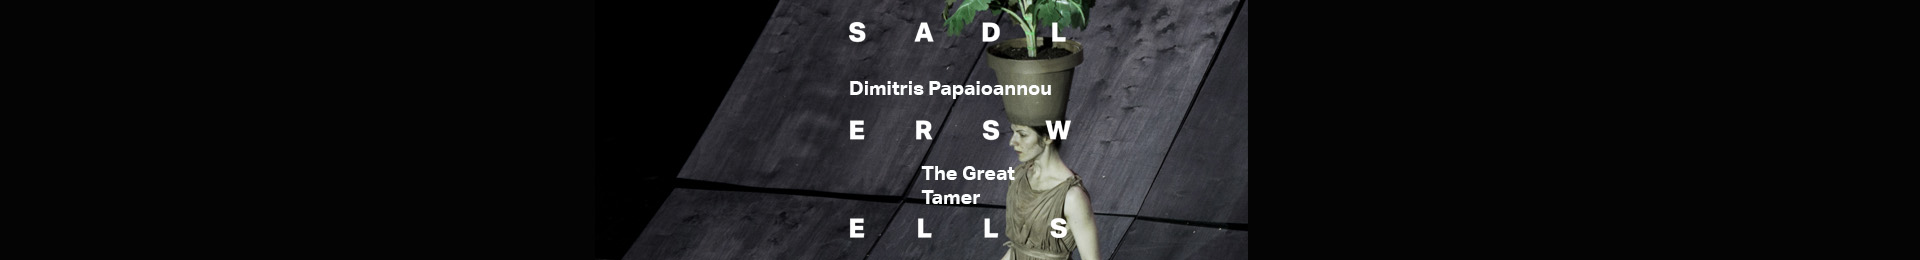 Dimitris Papaioannou: The Great Tamer banner image